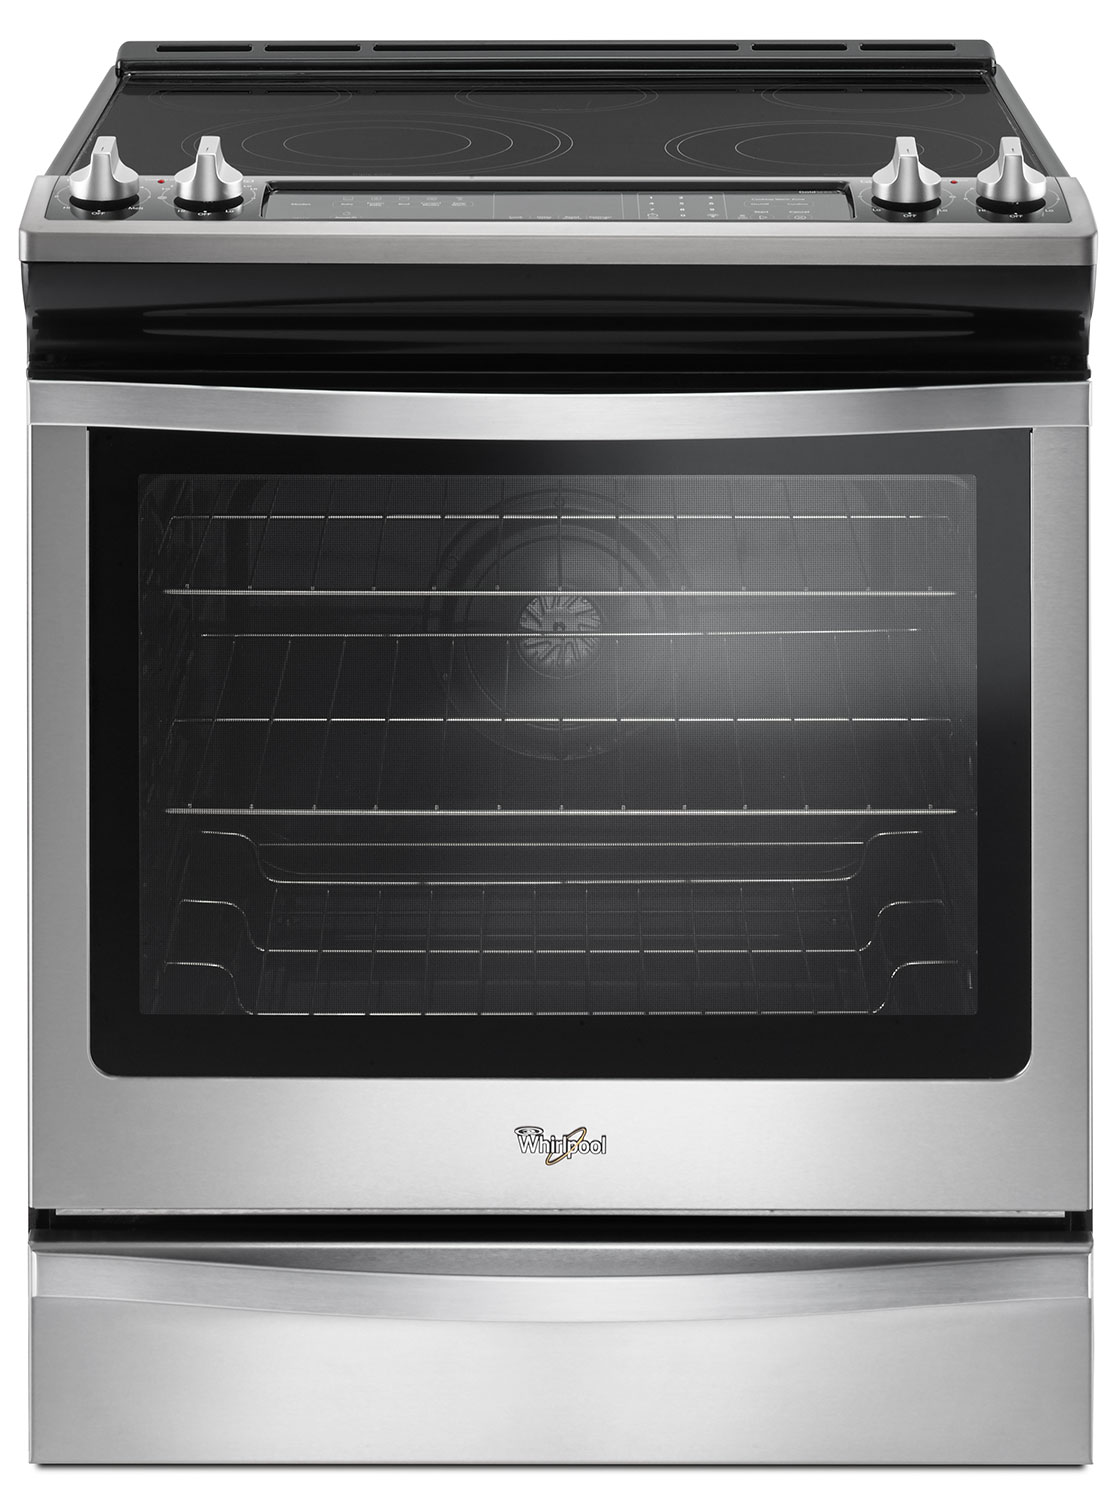 Cooking Products - Whirlpool 6.4 Cu. Ft. Slide-In Electric Range – YWEE745H0FS